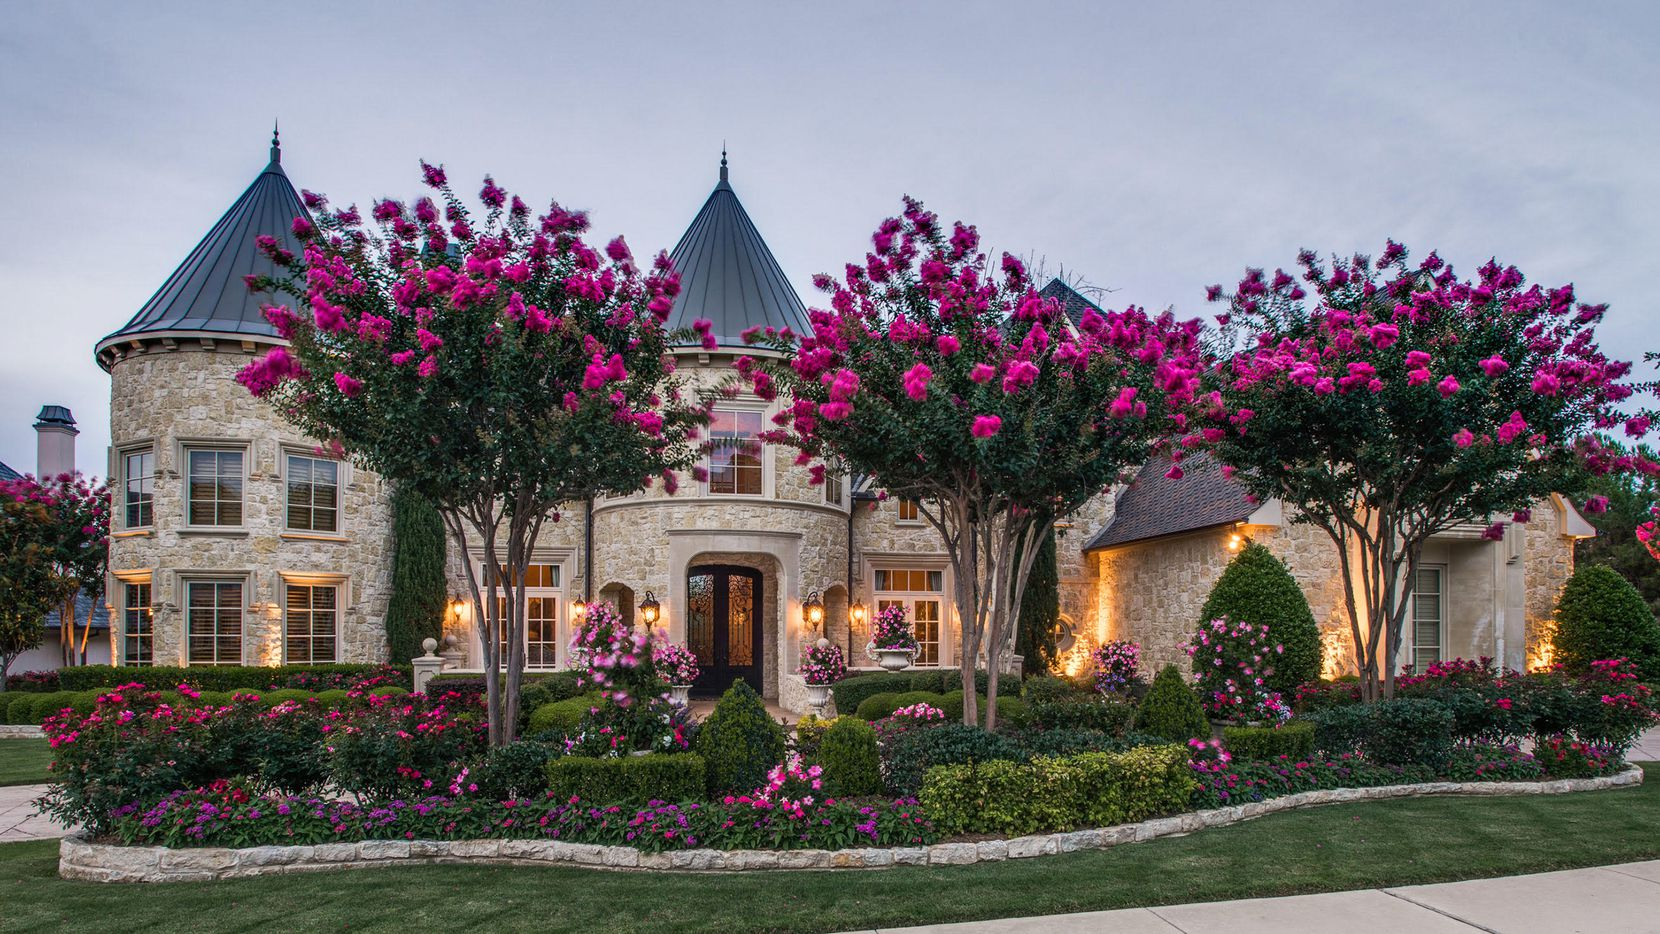 The estate at 5608 Monterey Drive in Starwood is offered at $2,749,000.